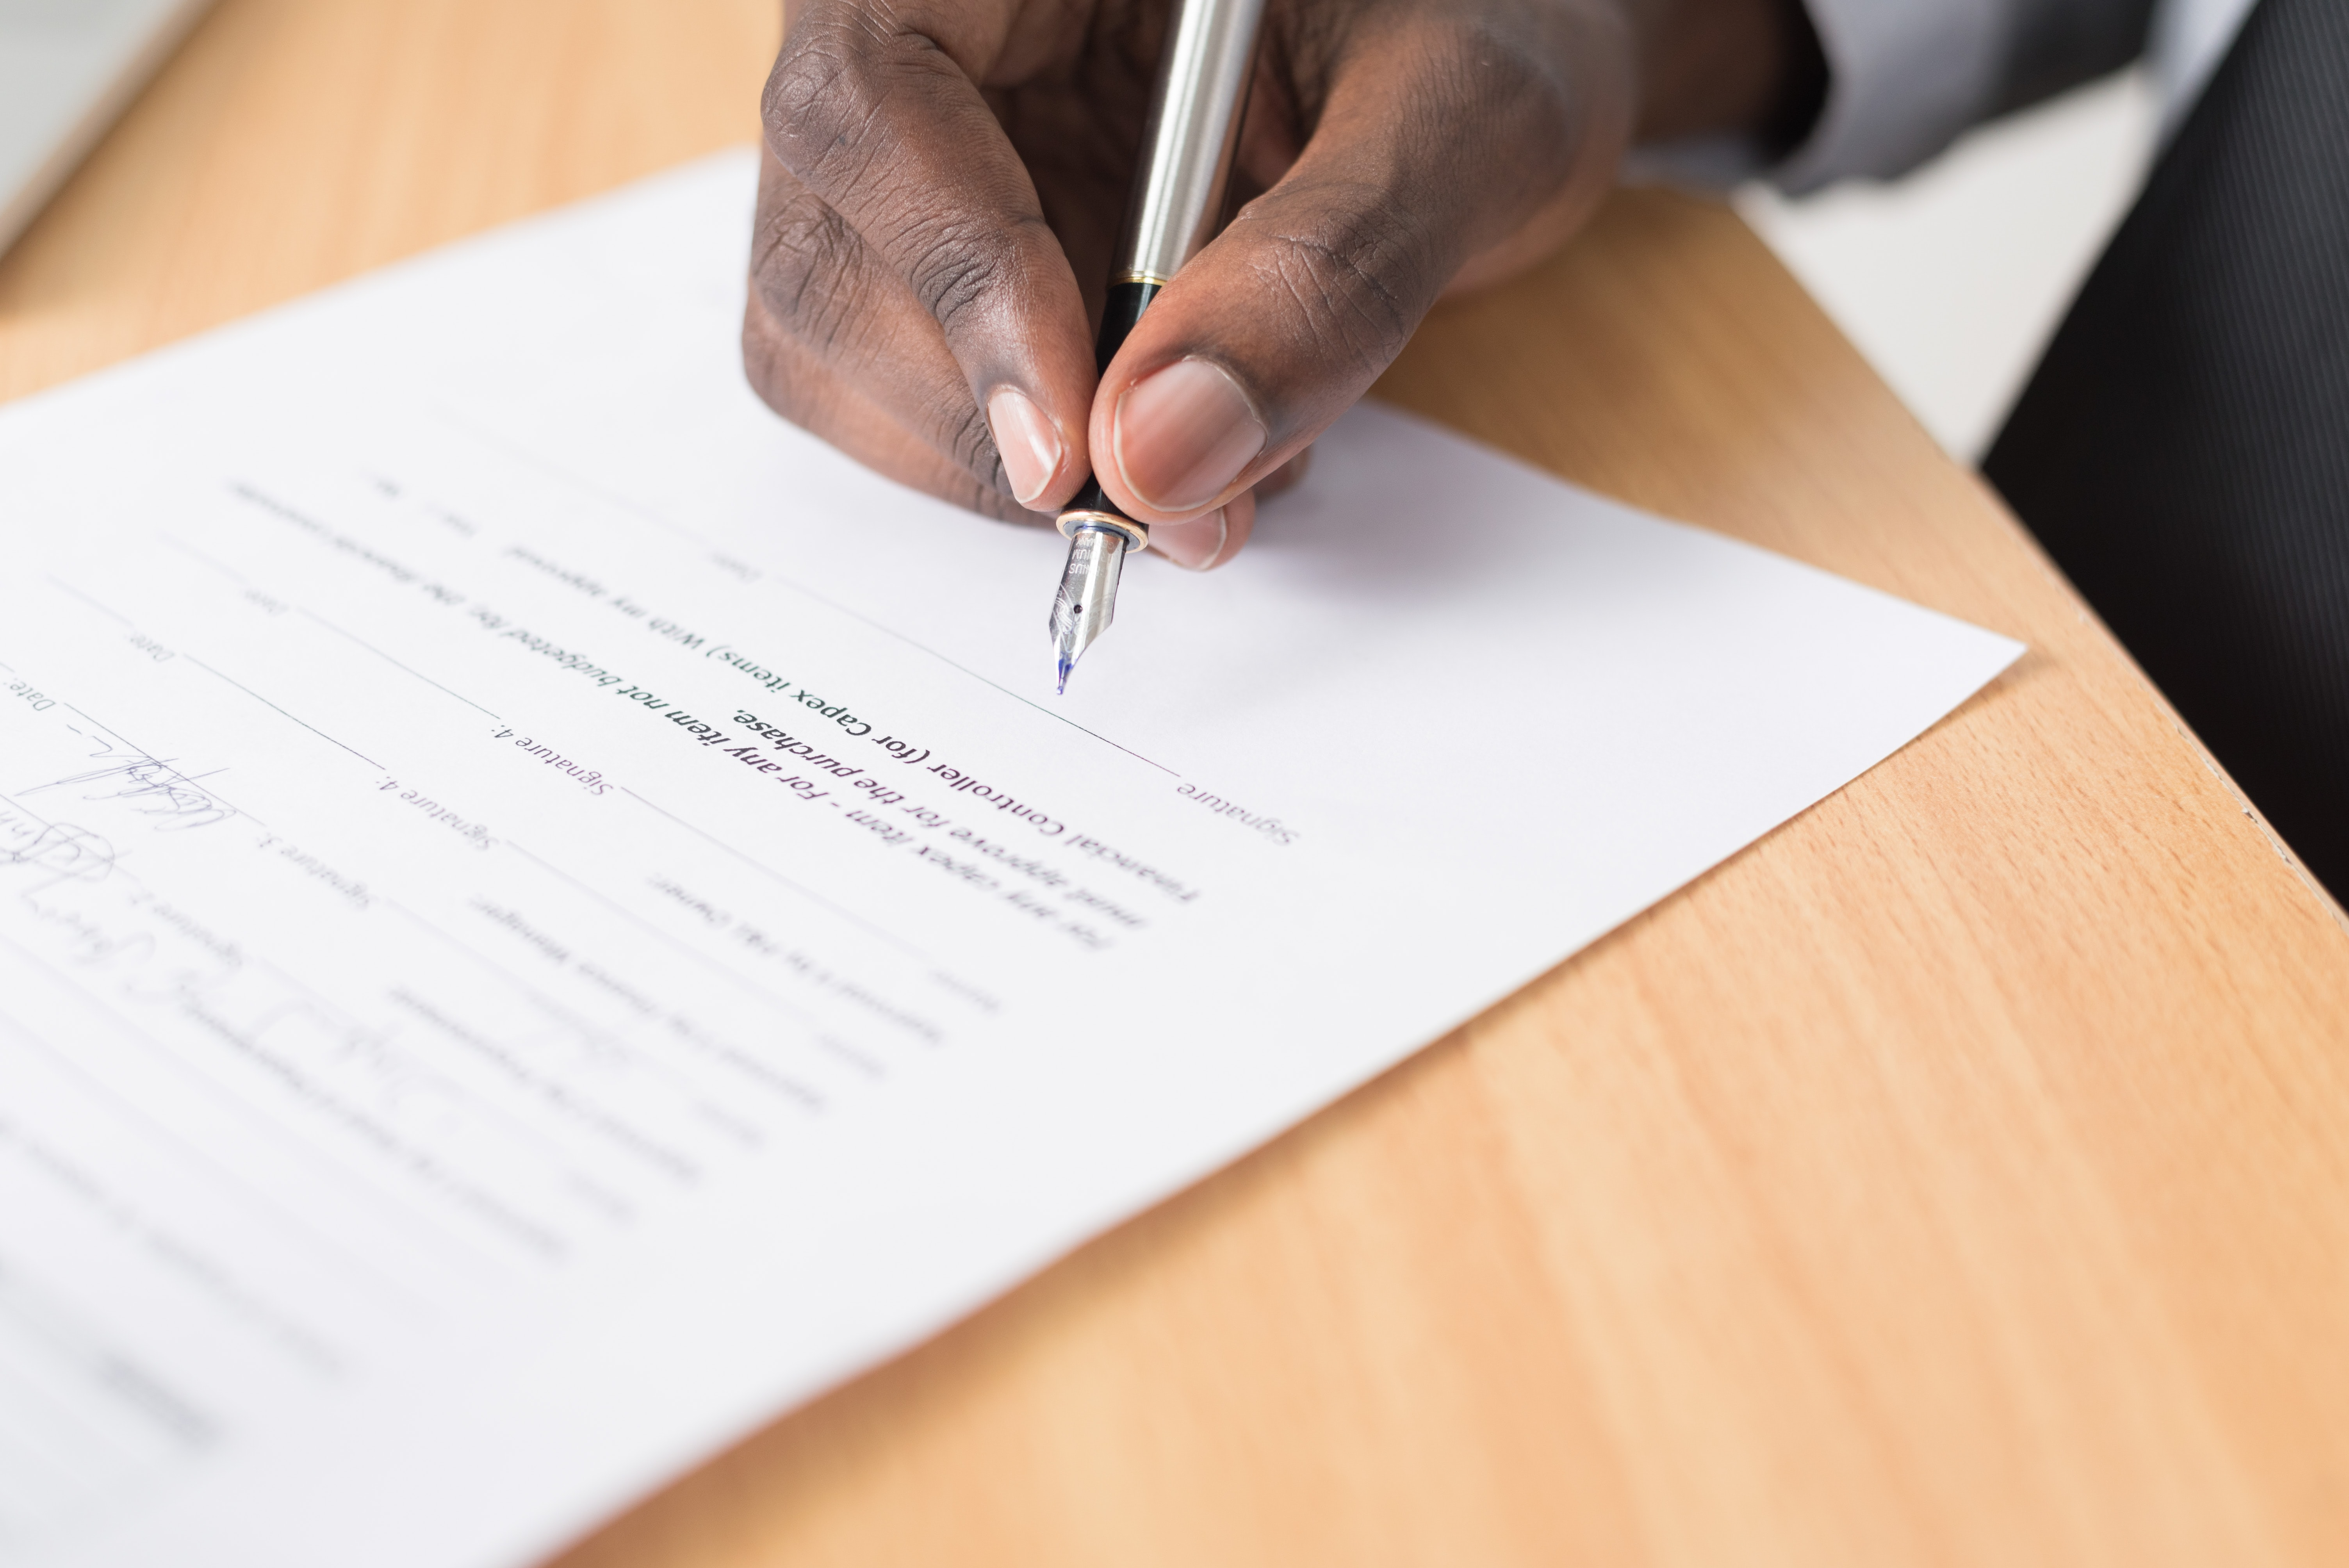 Signing a consent form to out-of-network treatment could expose consumers to large costs.